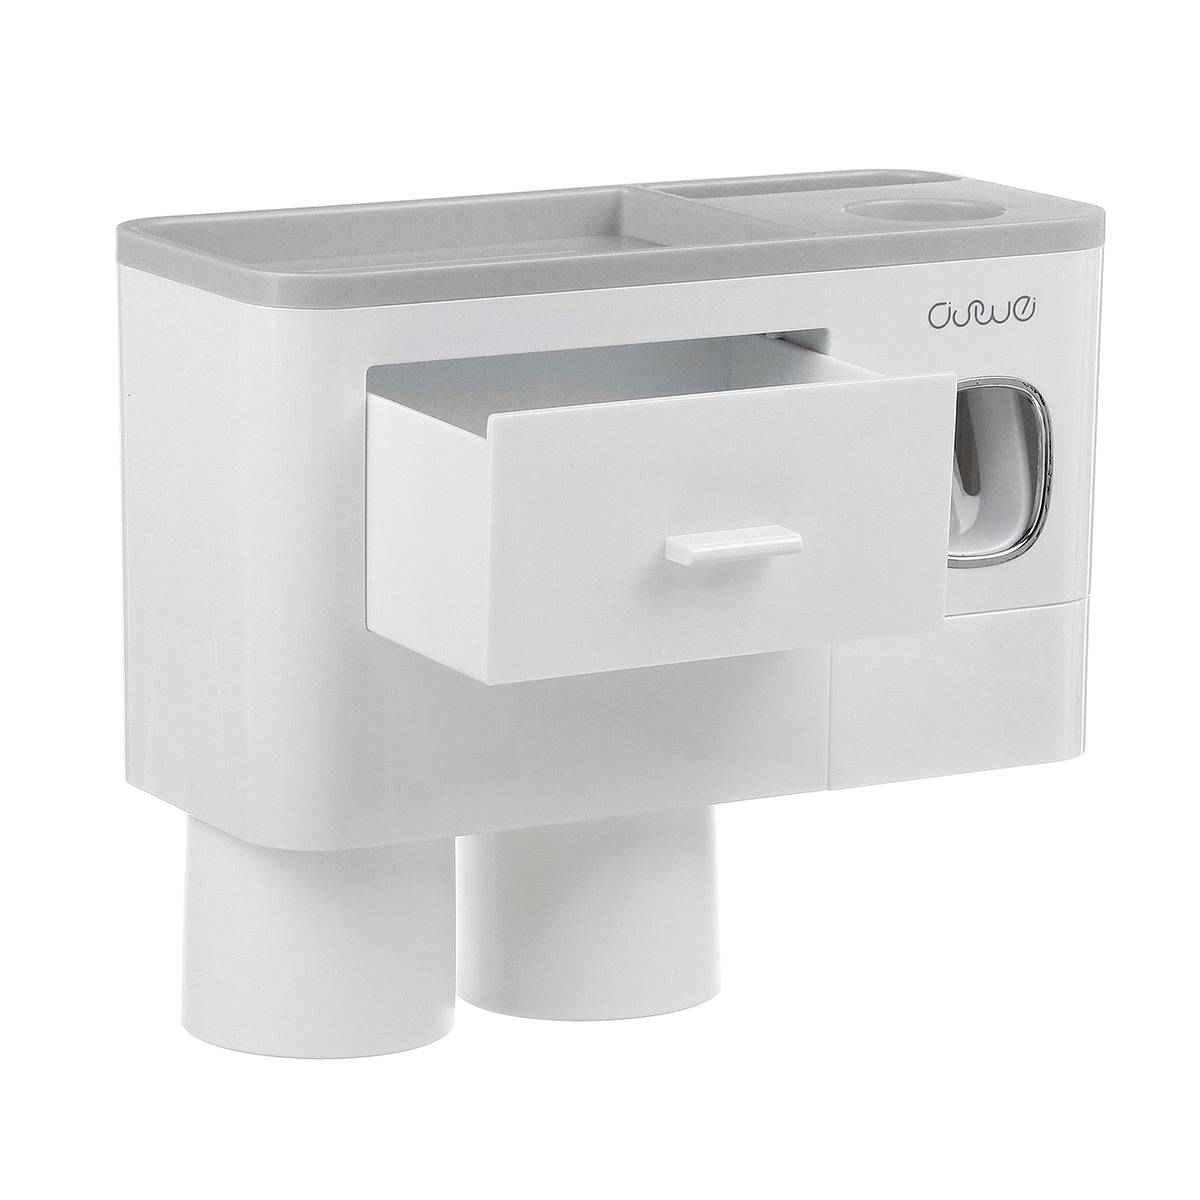 cozyrex,Toothbrush Holder Inverted Cups with Toothpaste Squeezer,CozyRex,